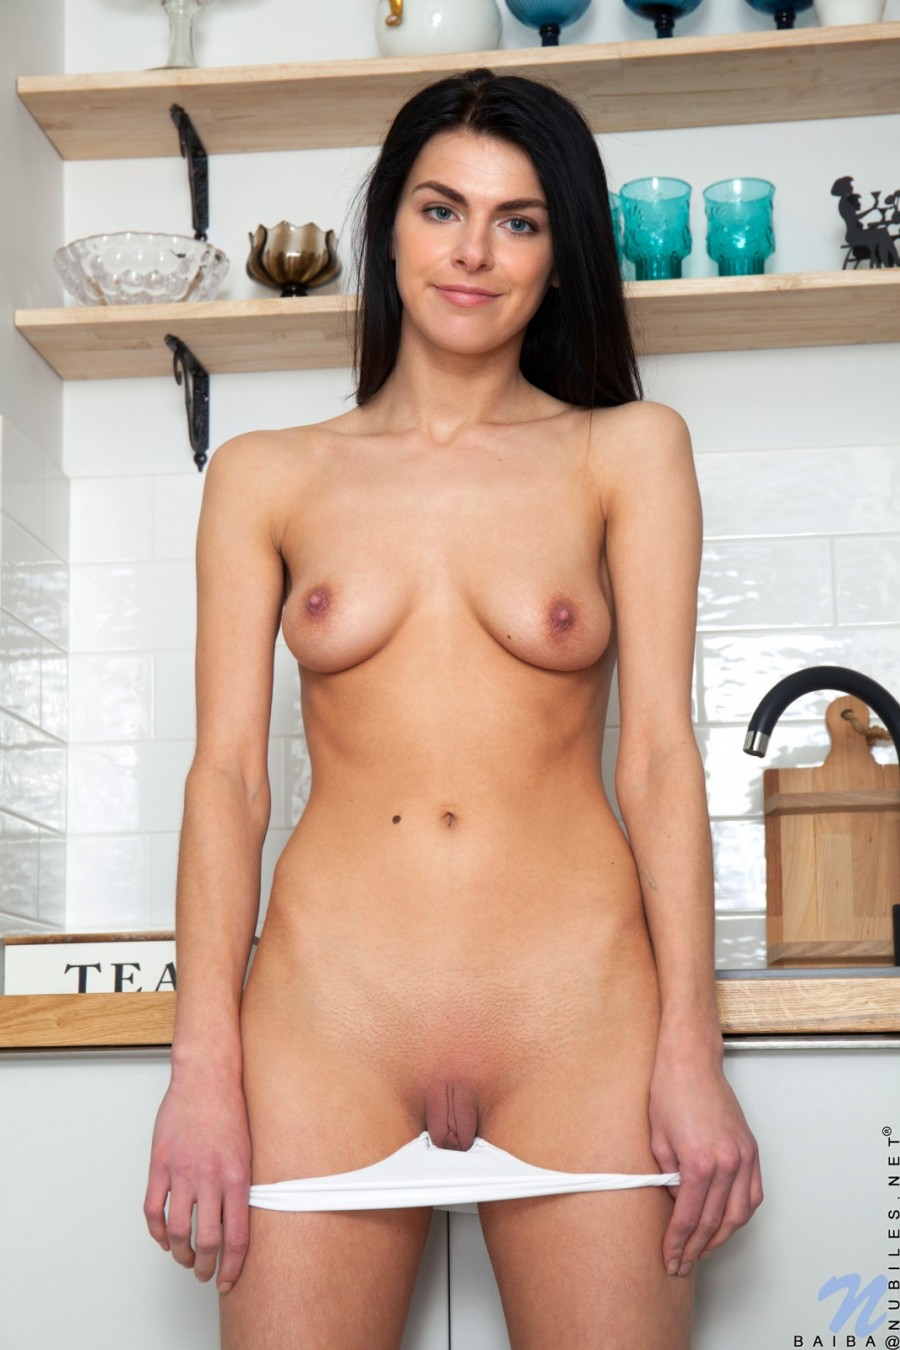 Shaved pussy on a young brunette